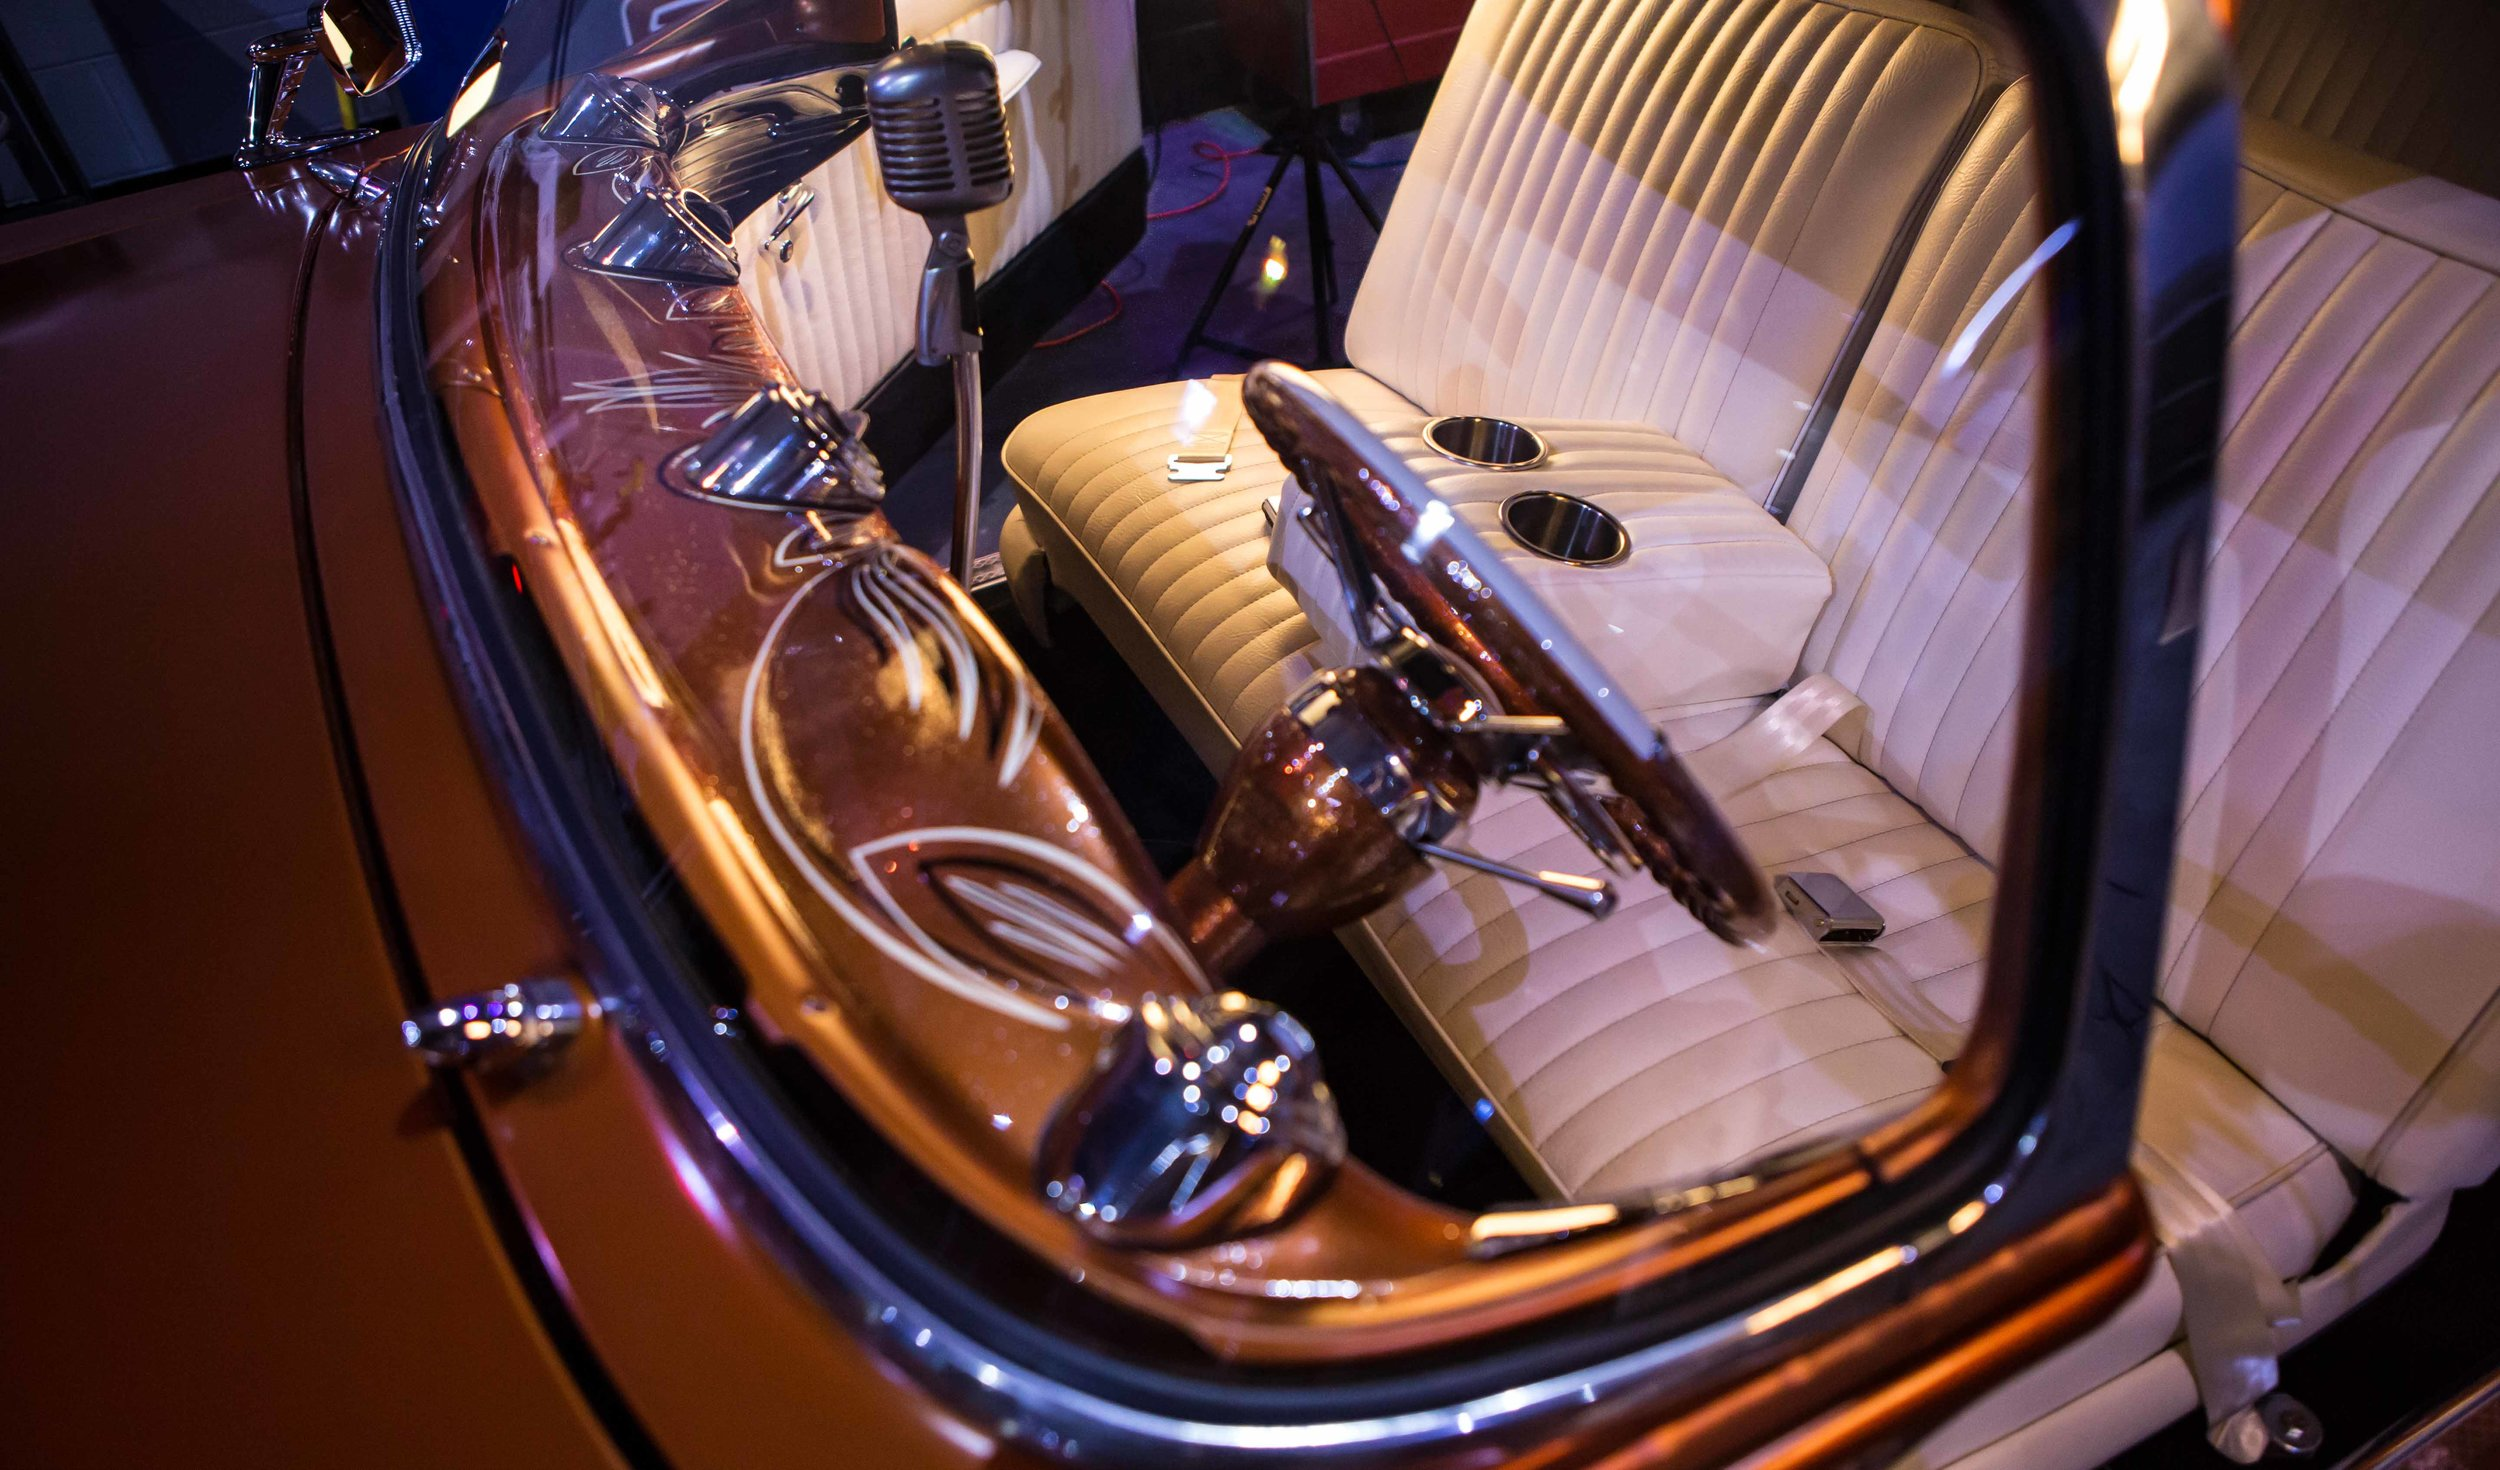 Anaheim Rod and Custom 1956 Merc Additional Photos (20 of 66).jpg